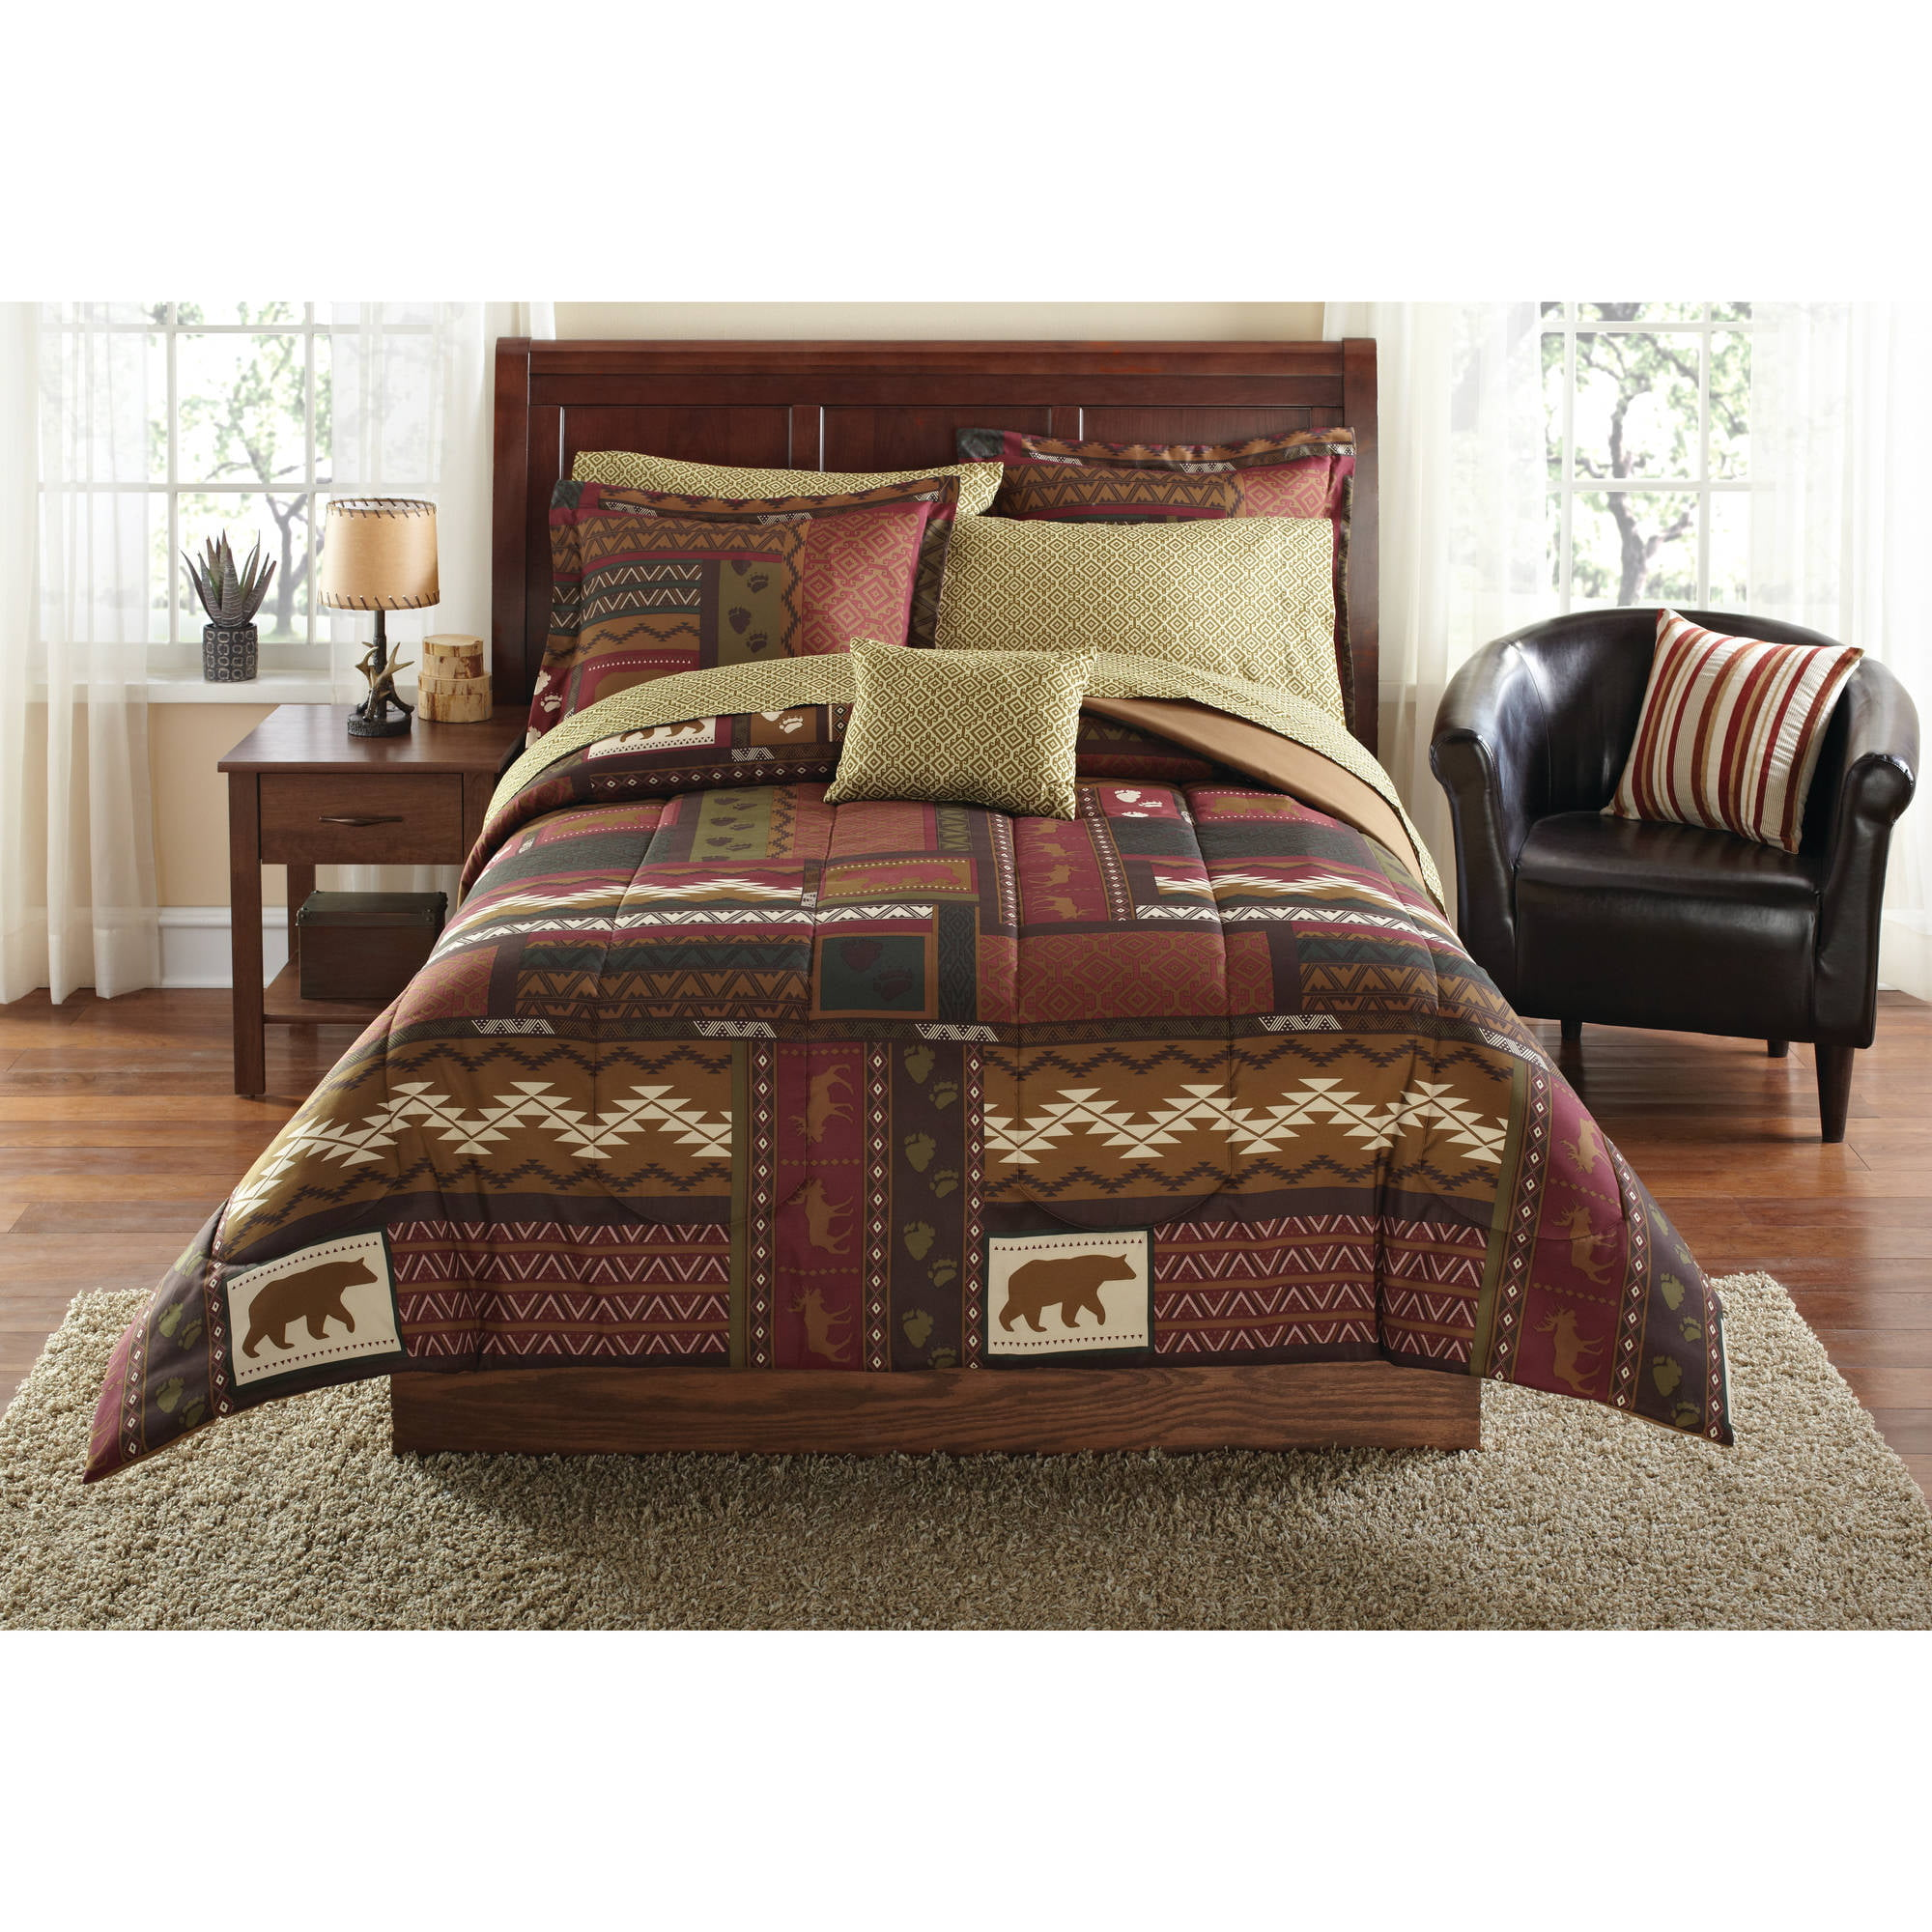 Bedding sets for women - Mainstays Cabin Bed In A Bag Coordinated Bedding Set